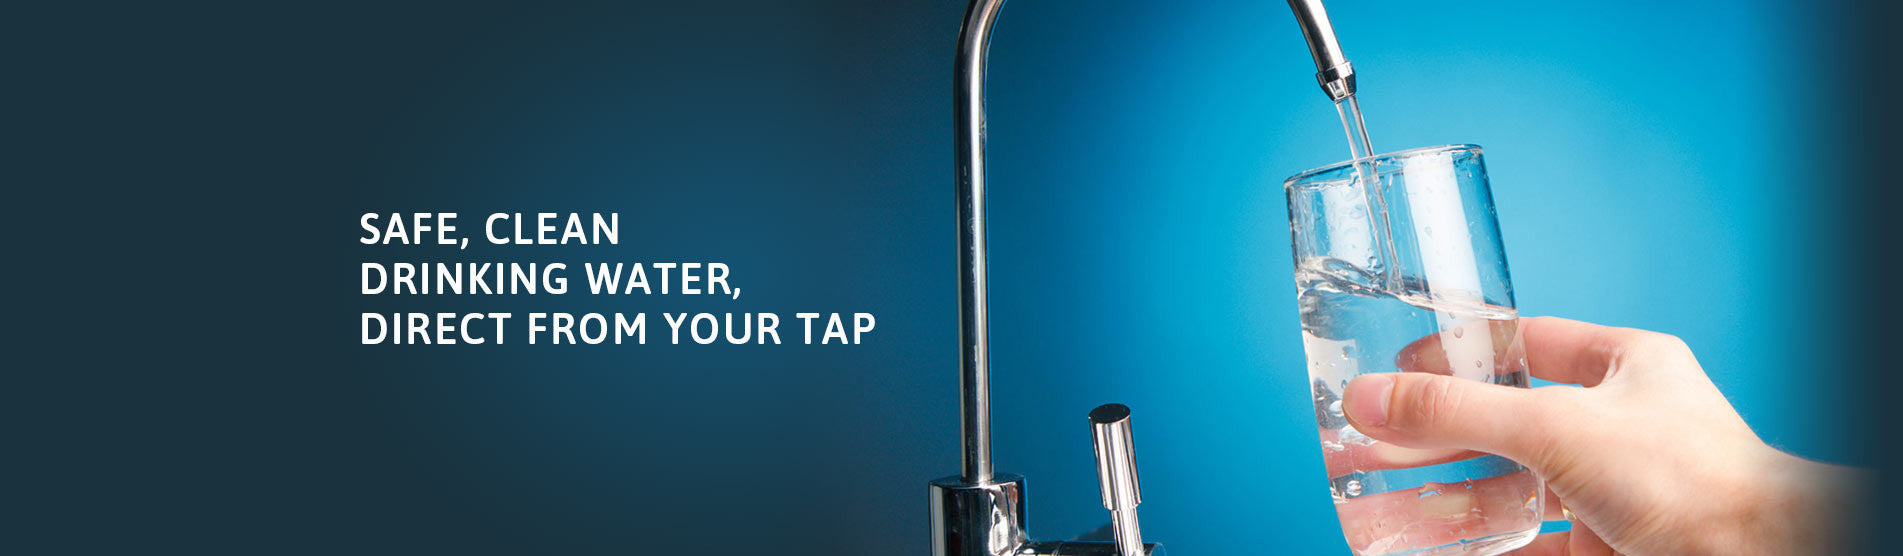 Safe, clean drinking water, direct from your tap